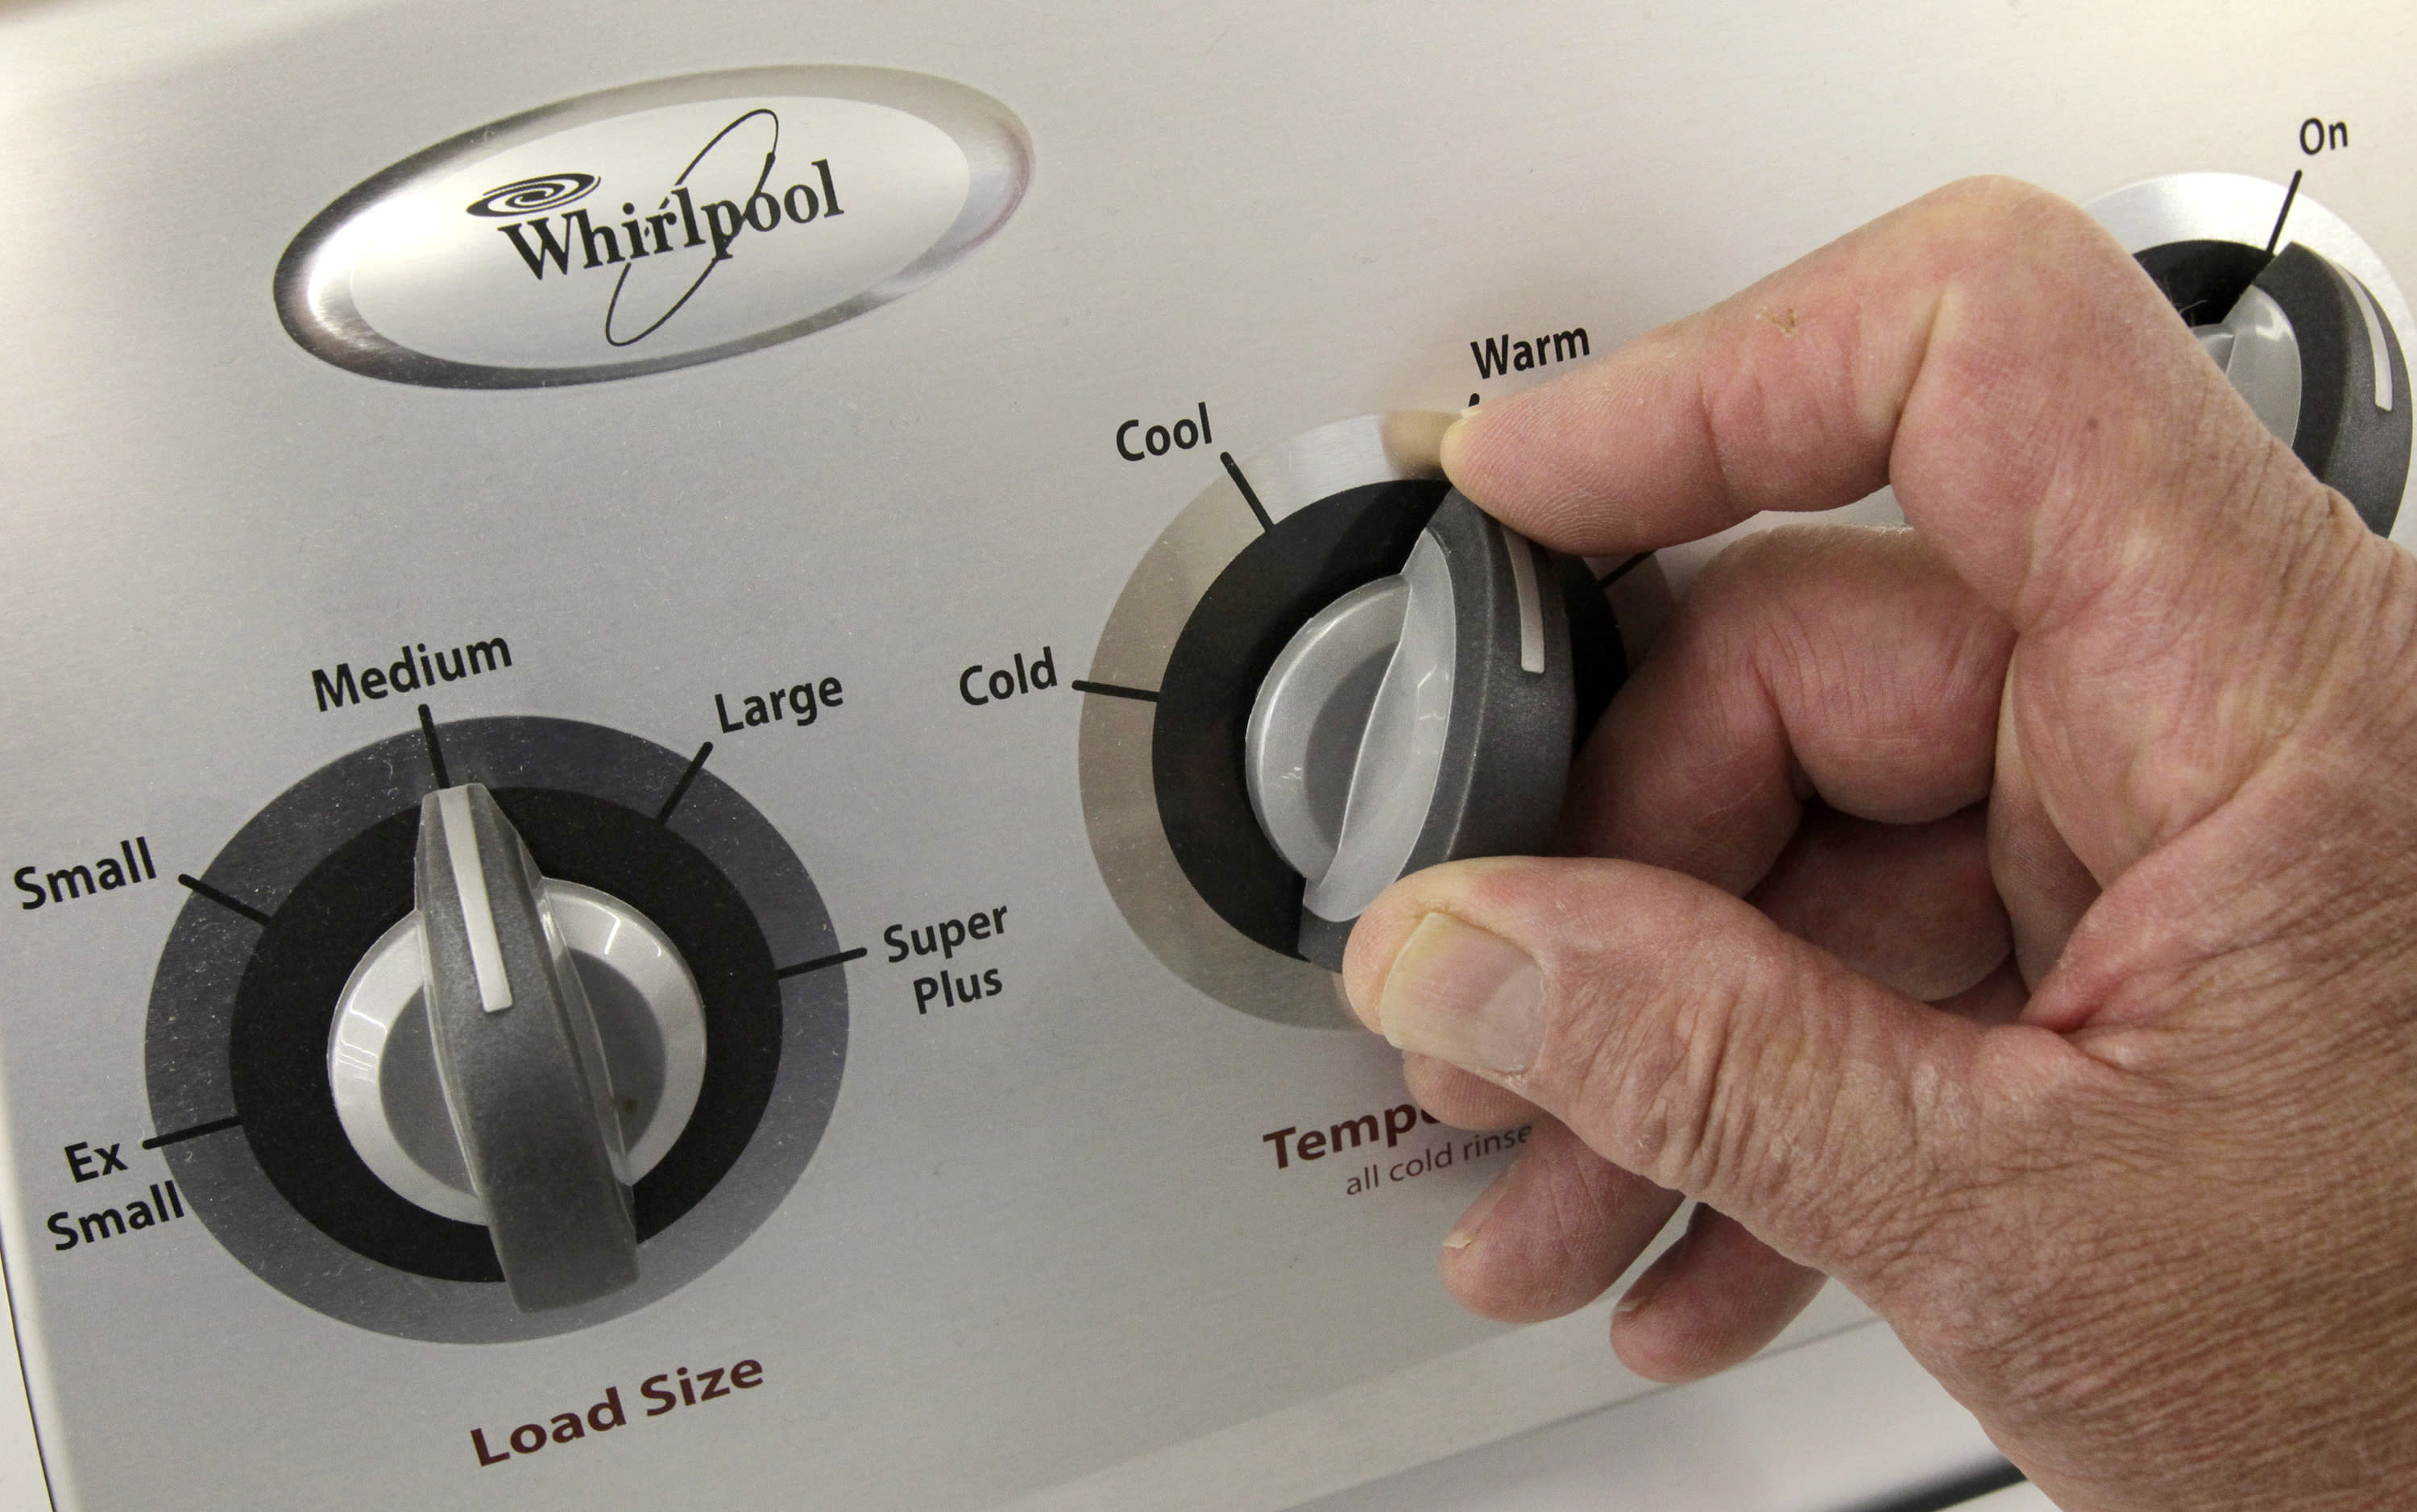 FILE - In this July 20, 2009 file photo, an unidentified employee tries the dials on a Whirlpool top load washing machine at the Sears Grand store in Solon, Ohio. Sears' Chapter 11 bankruptcy filing on Monday, Oct. 15, 2018, will have rippling effects on everything from its workers to suppliers. Suppliers in the top 20 unsecured creditors included Frigidaire, Samsung and Whirlpool, which are owed between $8 million to $23 million, according to court documents. (AP Photo/Amy Sancetta, File)